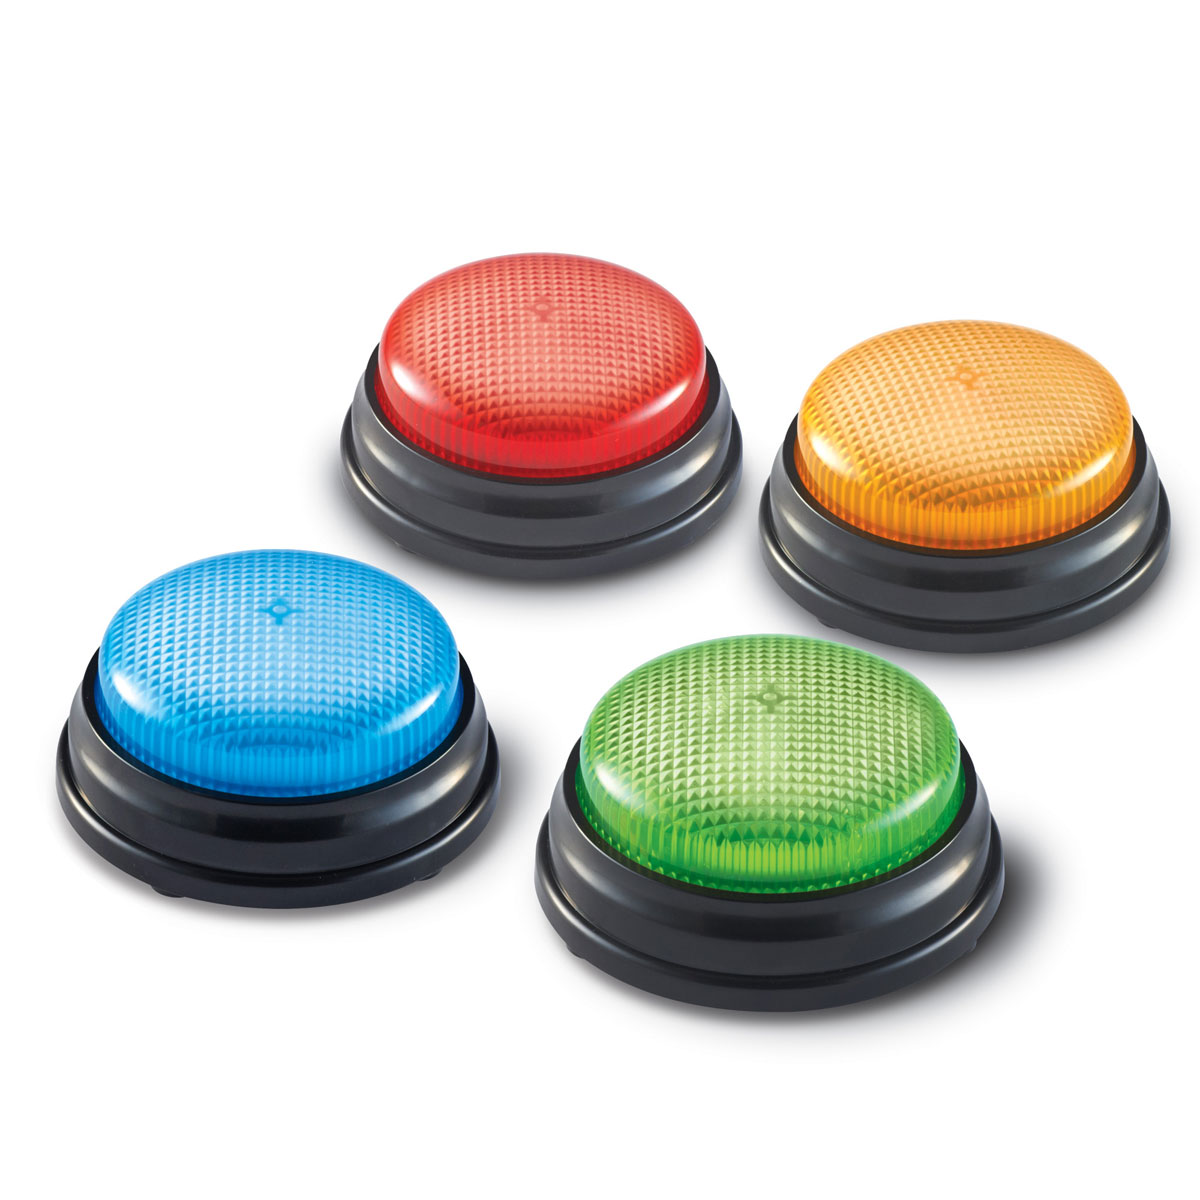 Buy Lights Sounds Buzzers Set Of 4 By Learning Resources Game Show Quiz Buzzer Circuit Kit Ler3776